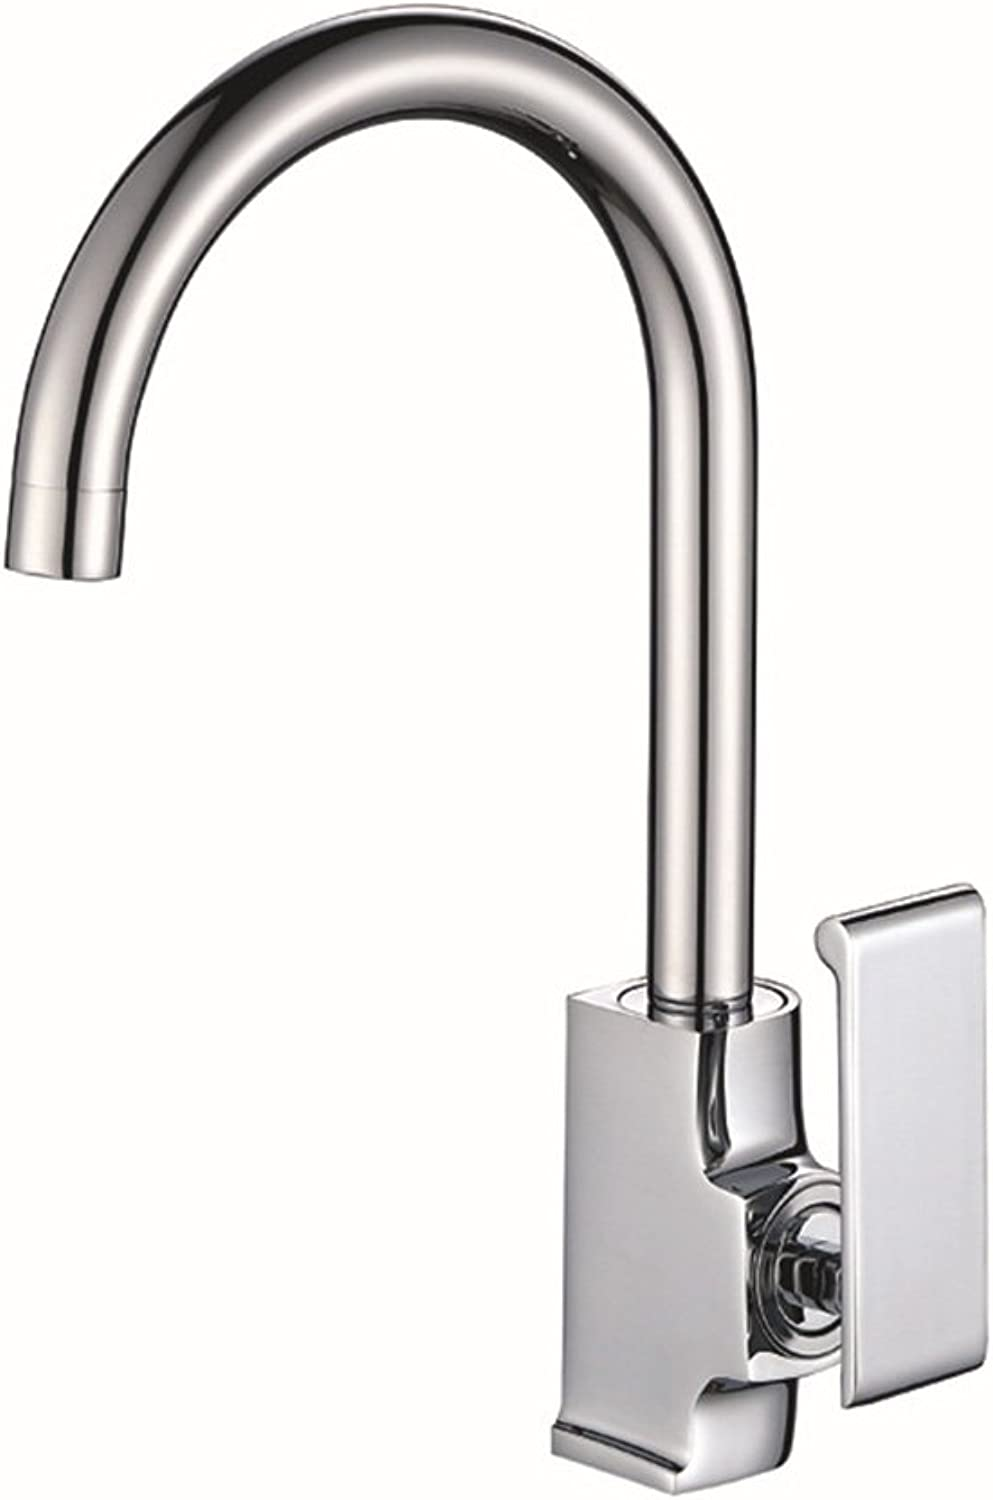 QJIAXING Home Kitchen Taps Mixer Full Copper Single Handle Hot And Cold Basin Sink Faucet,Chrome